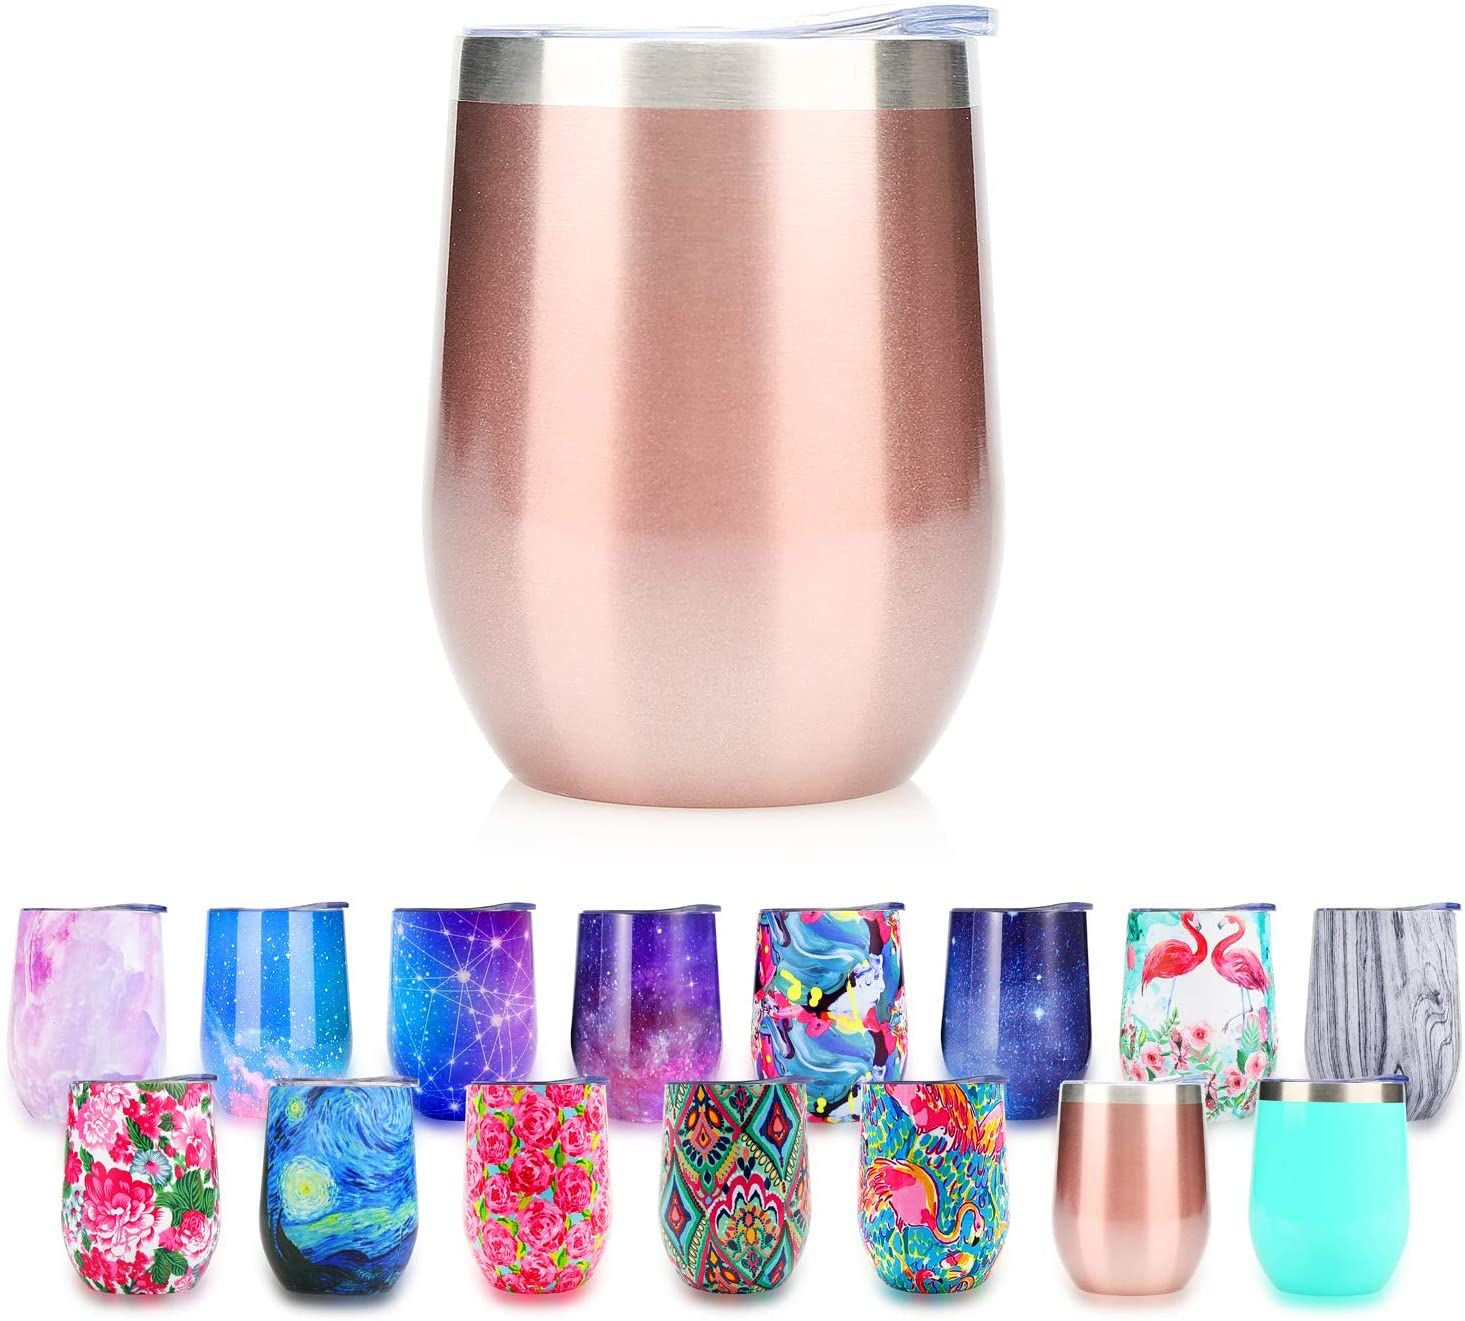 Stainless Steel Stemless Wine Glass Tumbler with Lid, 12 oz | Double Wall Vacuum Insulation Travel Tumbler Cup for Wine Coffee Drinks Champagne Cocktails Ice Cream | Sweat Free (015)